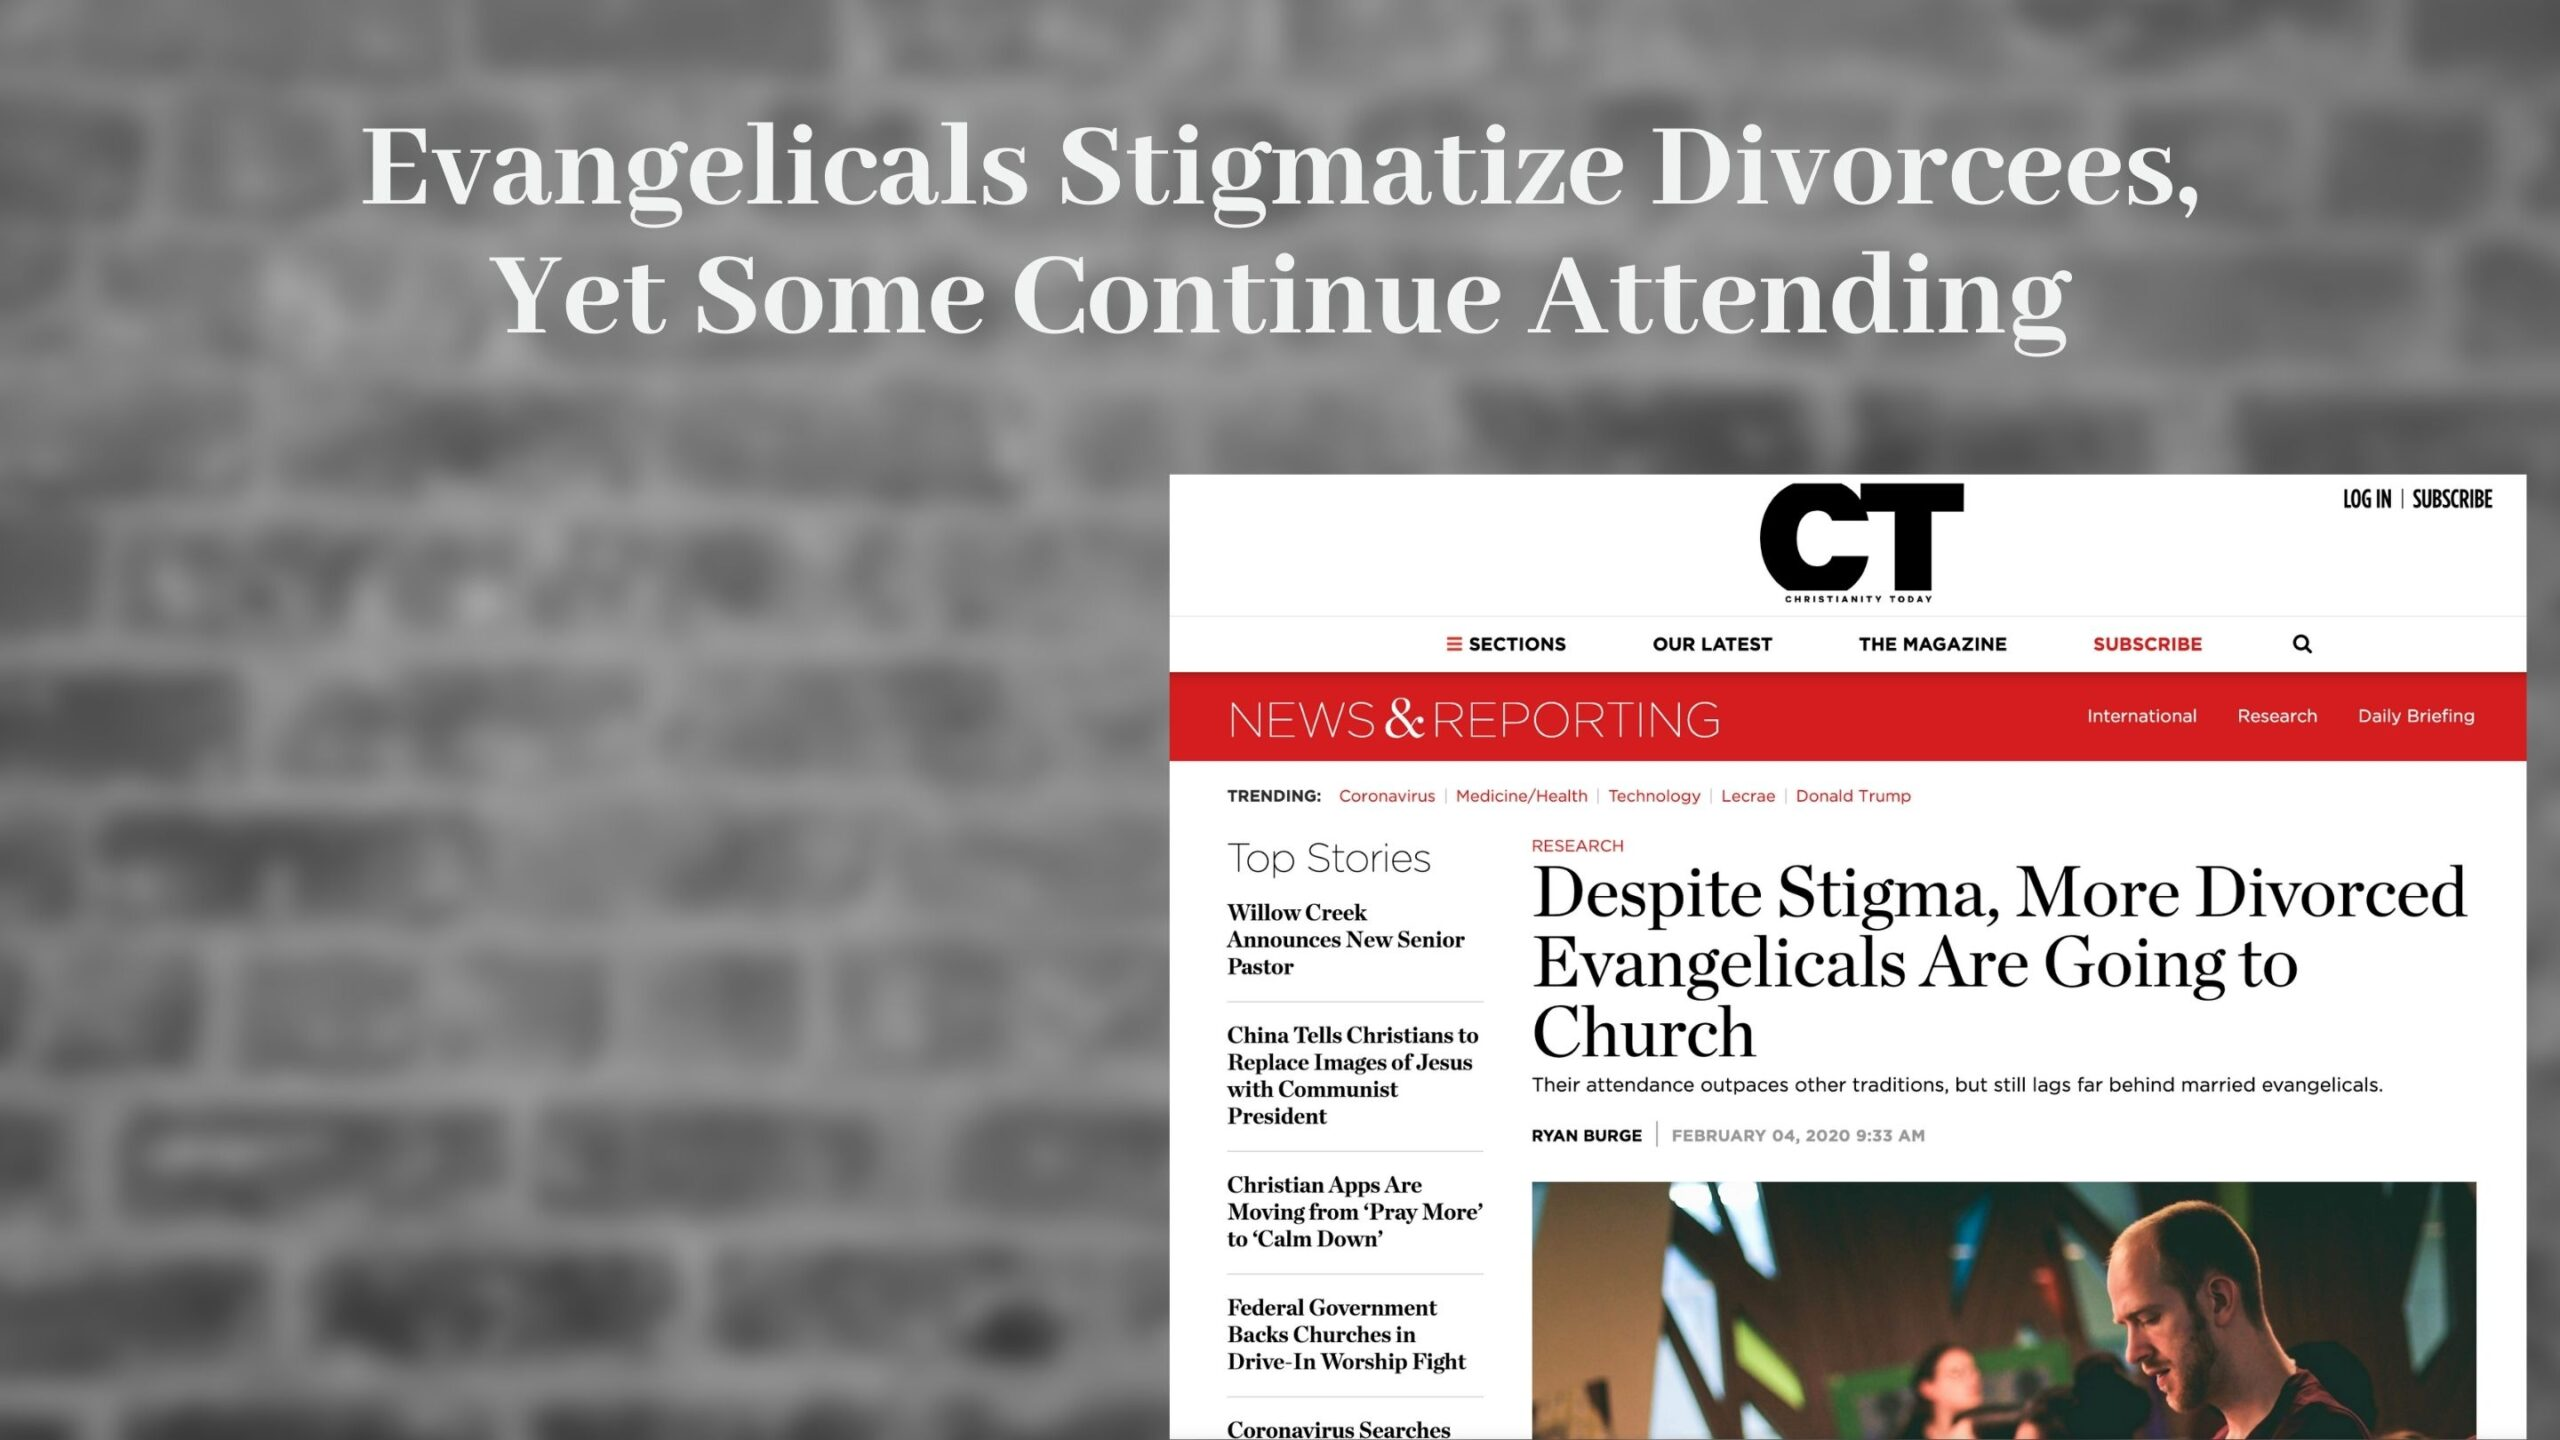 Christianity Today article on the Stigma of Divorce in Evangelical Churches